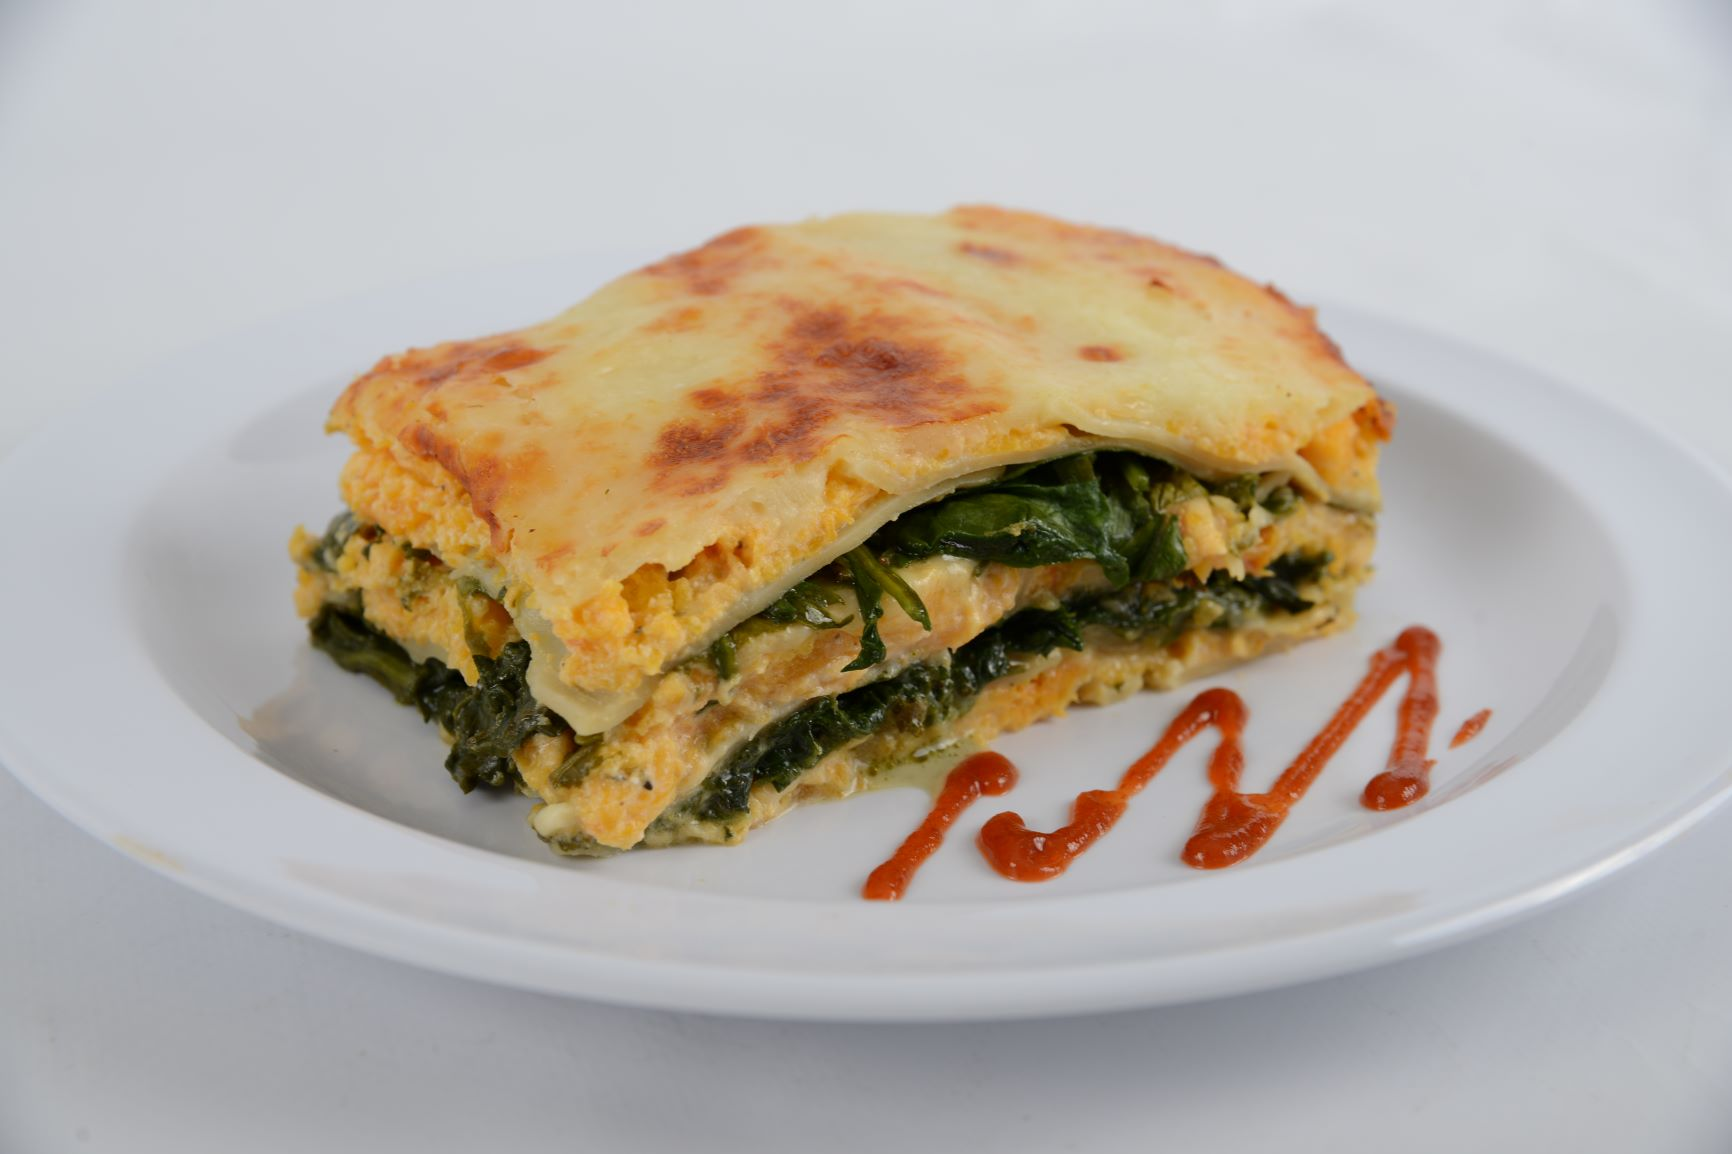 Roasted Butternut Squash & Spinach Lasagna (Monday 3/8 Delivery)